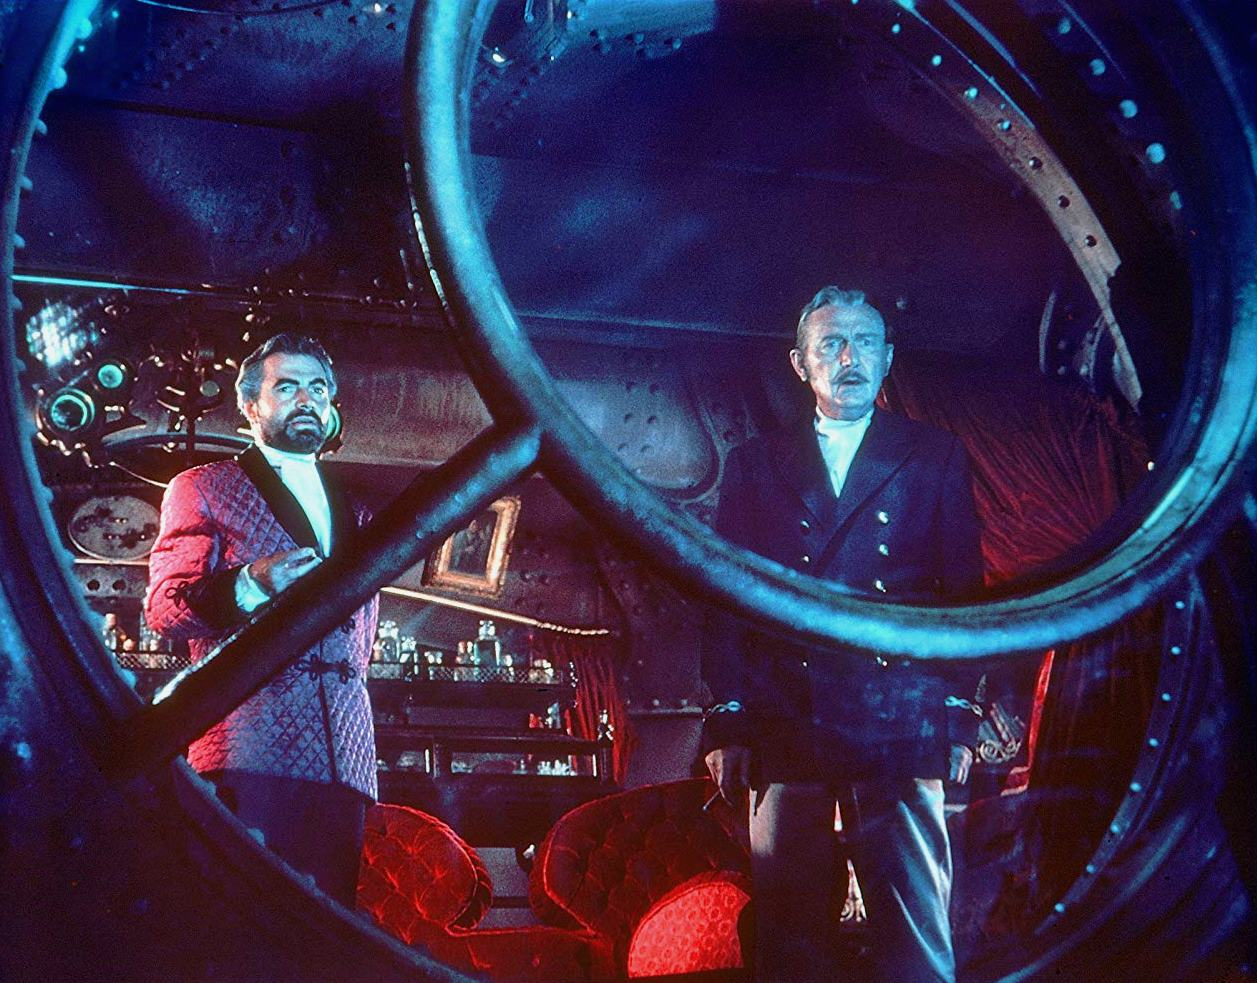 (l to r) Captain Nemo (James Mason) and Professor Arronax (Paul Lukas) in 20,000 Leagues Under the Sea (1954)